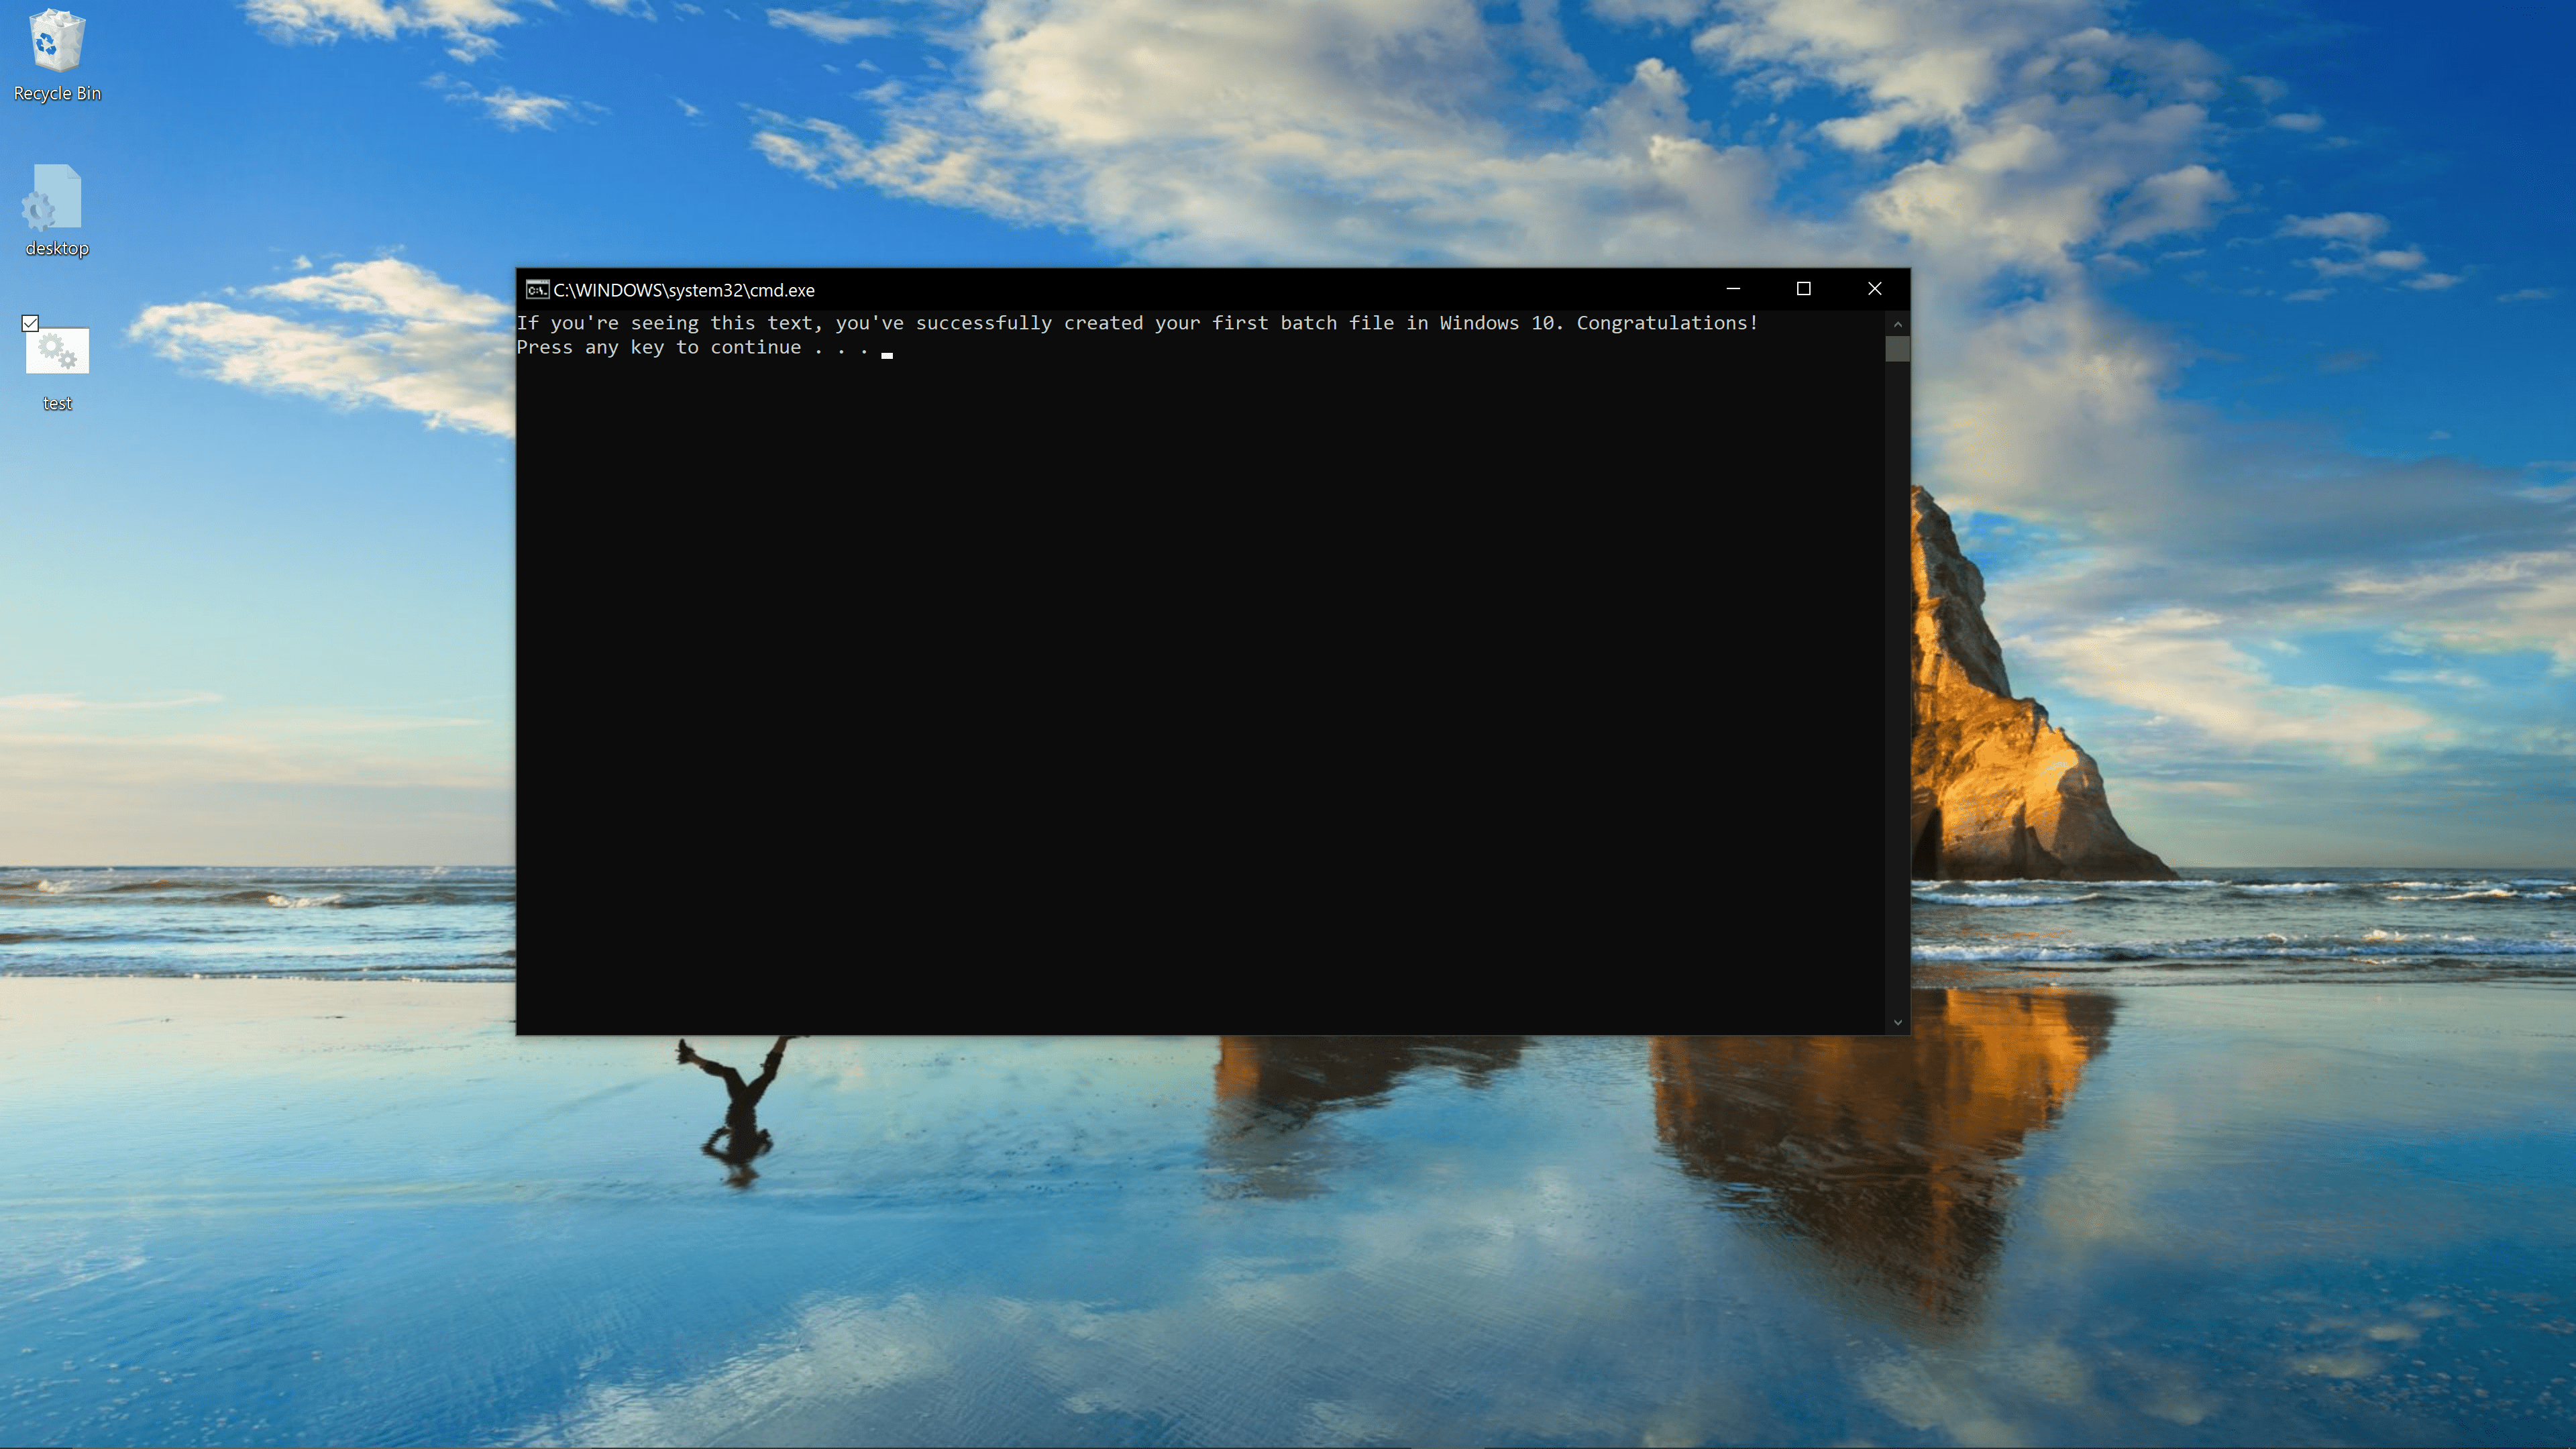 An executed batch file in Windows 10.